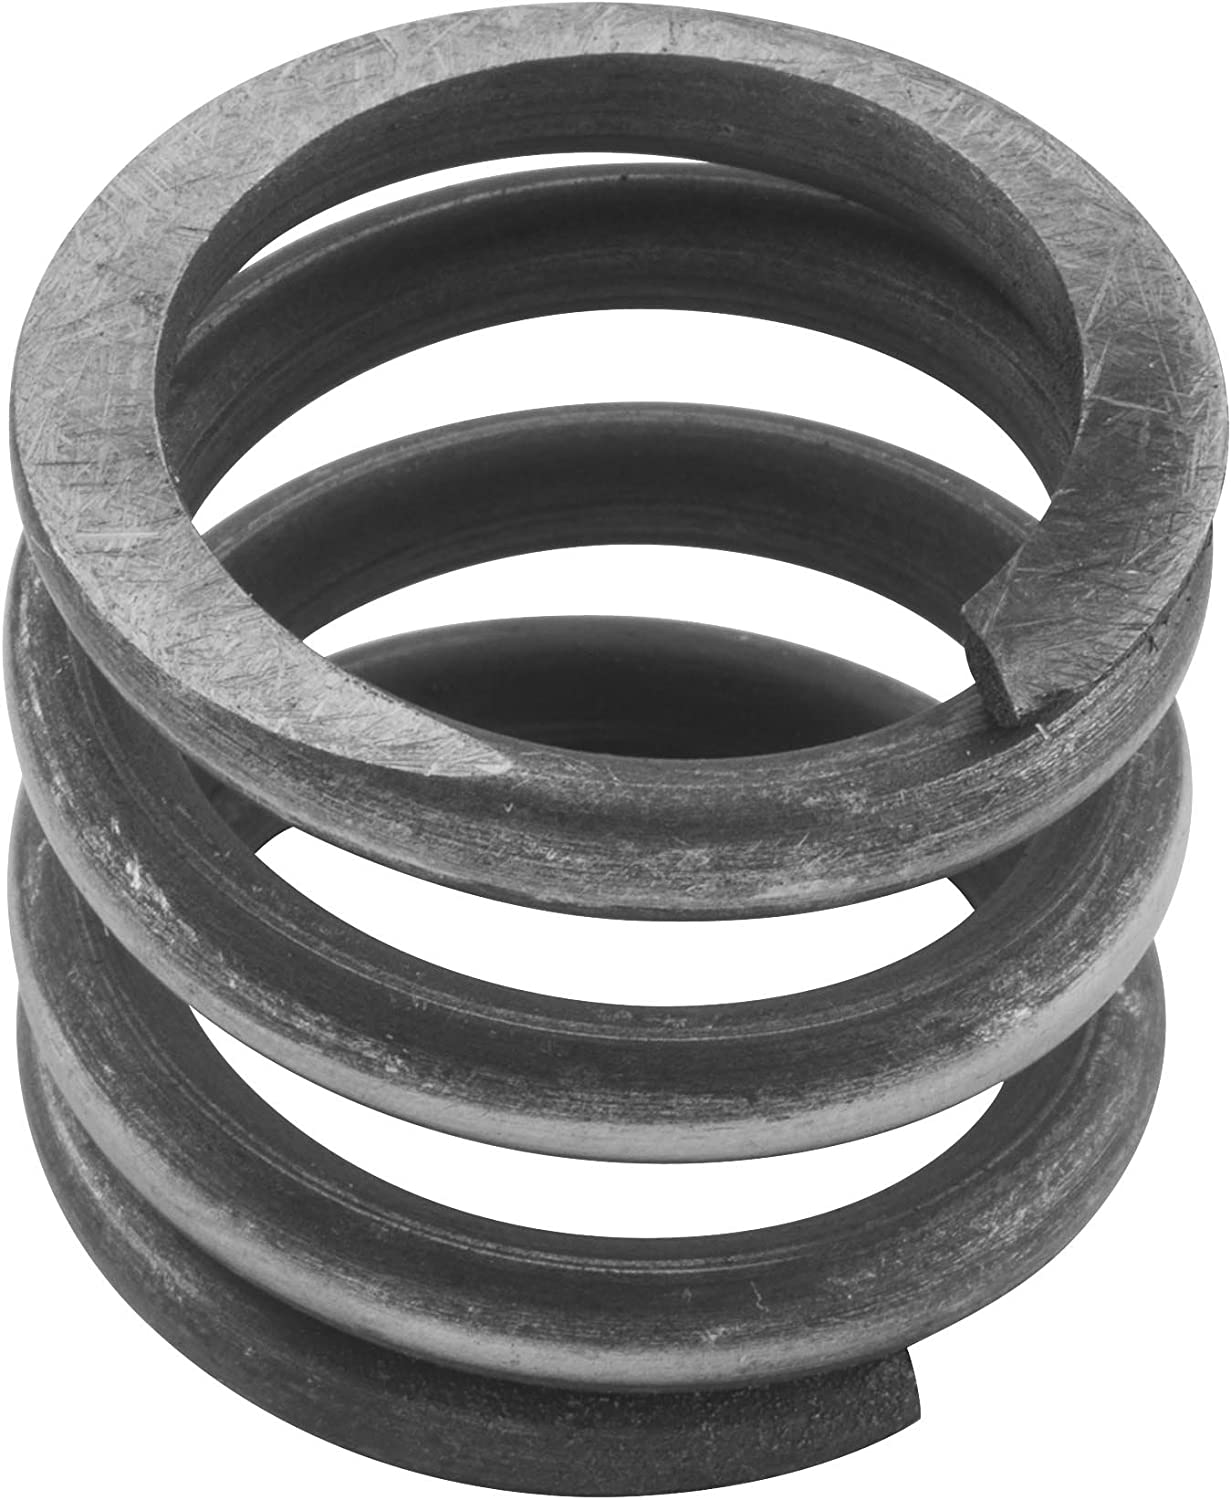 Eastern Performance Damper Tube Spring A-45933-86